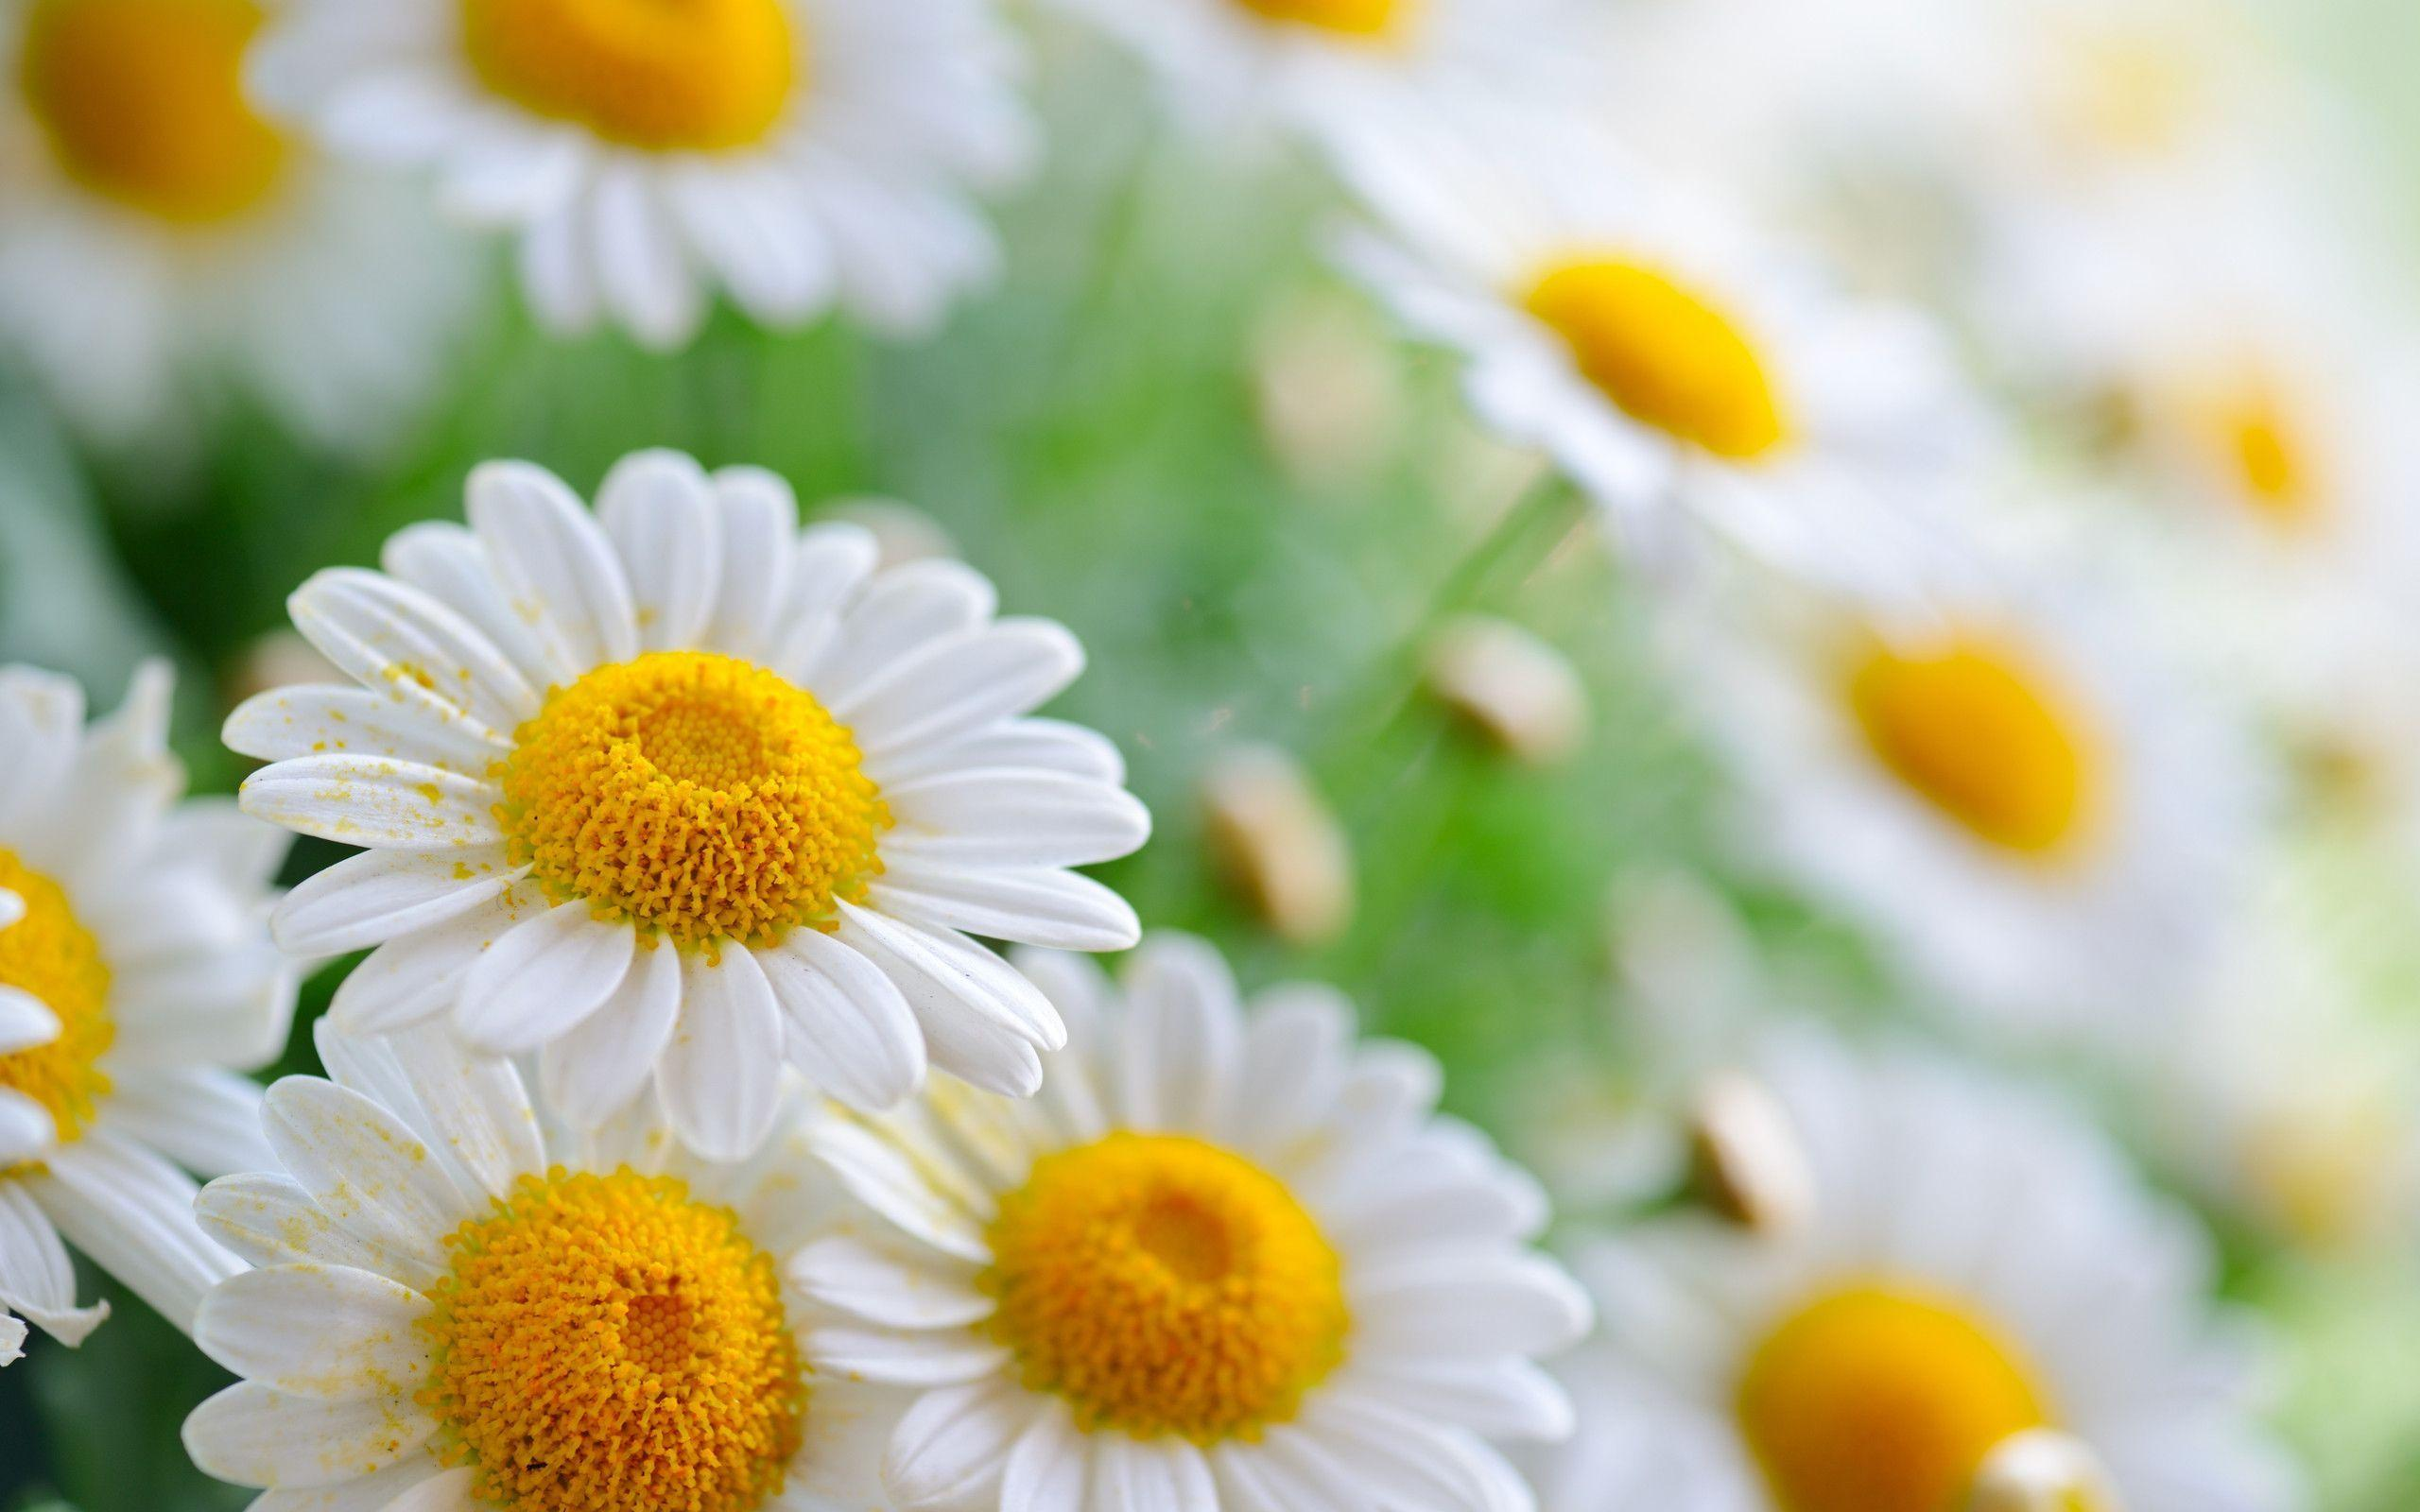 Daisy flower wallpapers wallpaper cave pollen on daisy flower wallpapers 2560x1600 1341177 izmirmasajfo